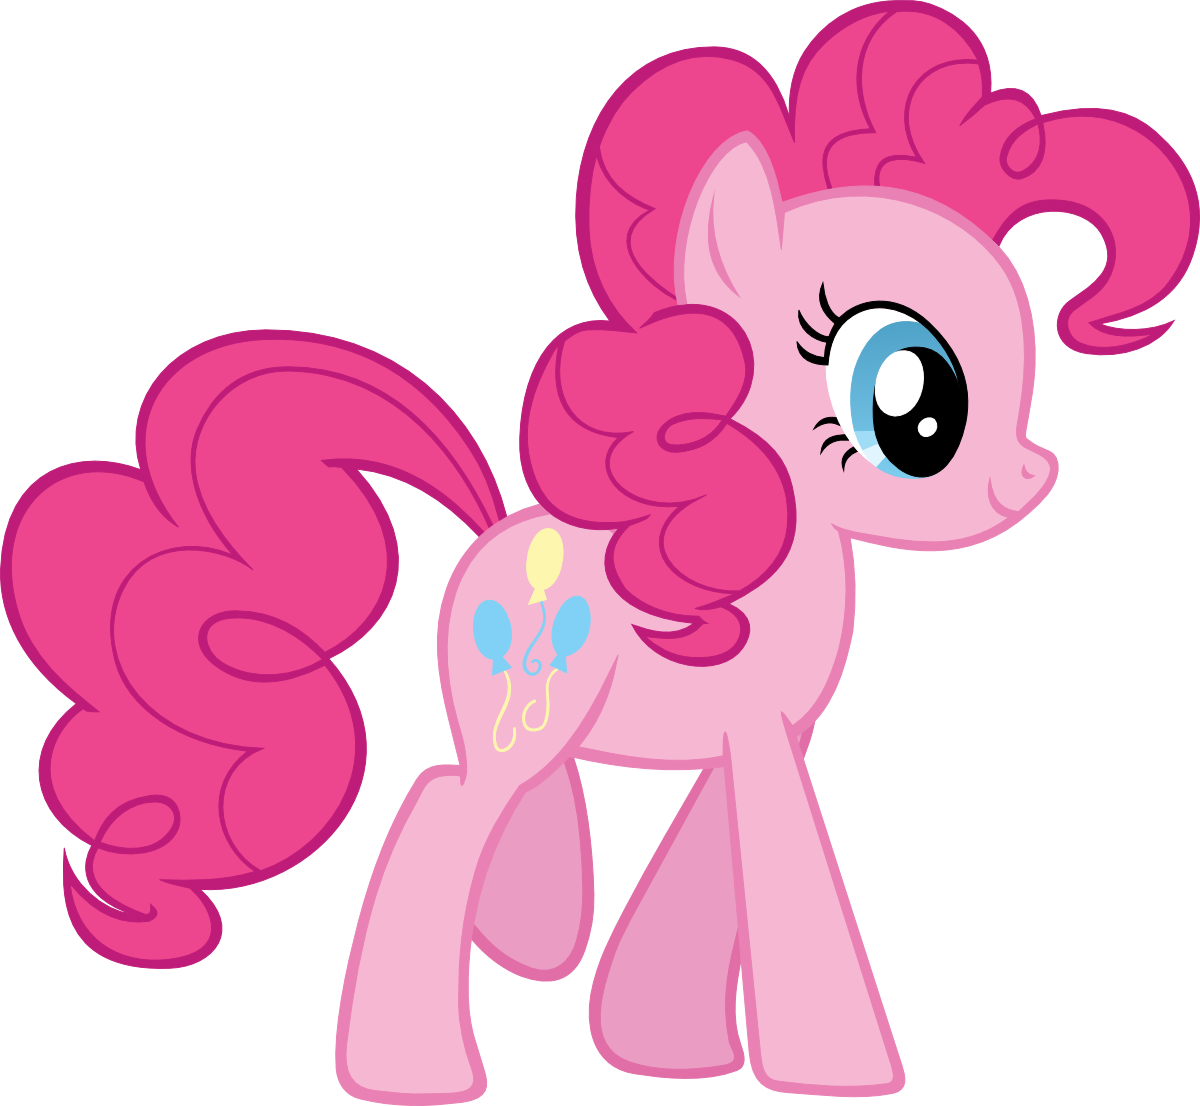 Pinkie pie halloween clipart clip art royalty free download Which My Little Pony Character Are You??? | Pinterest | Pony, Pinkie ... clip art royalty free download